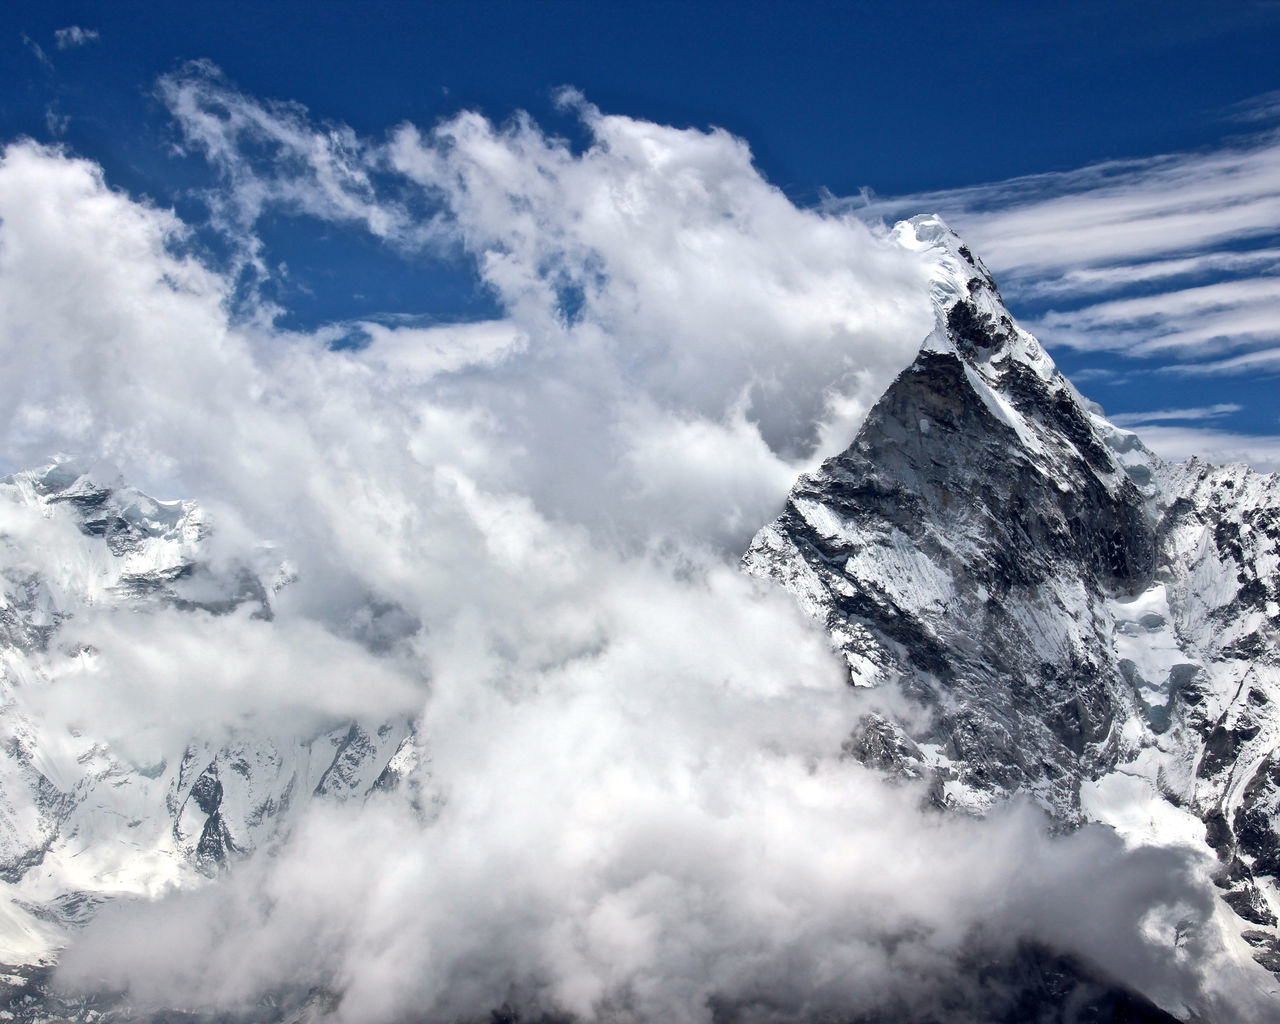 Ama Dablam Beauty In Nature Cloud - Sky Cold Temperature Day Hiking Himalayas Mountain Mountain Peak Nature Nepal No People Outdoors Sky Snow Tree Trekking Winter